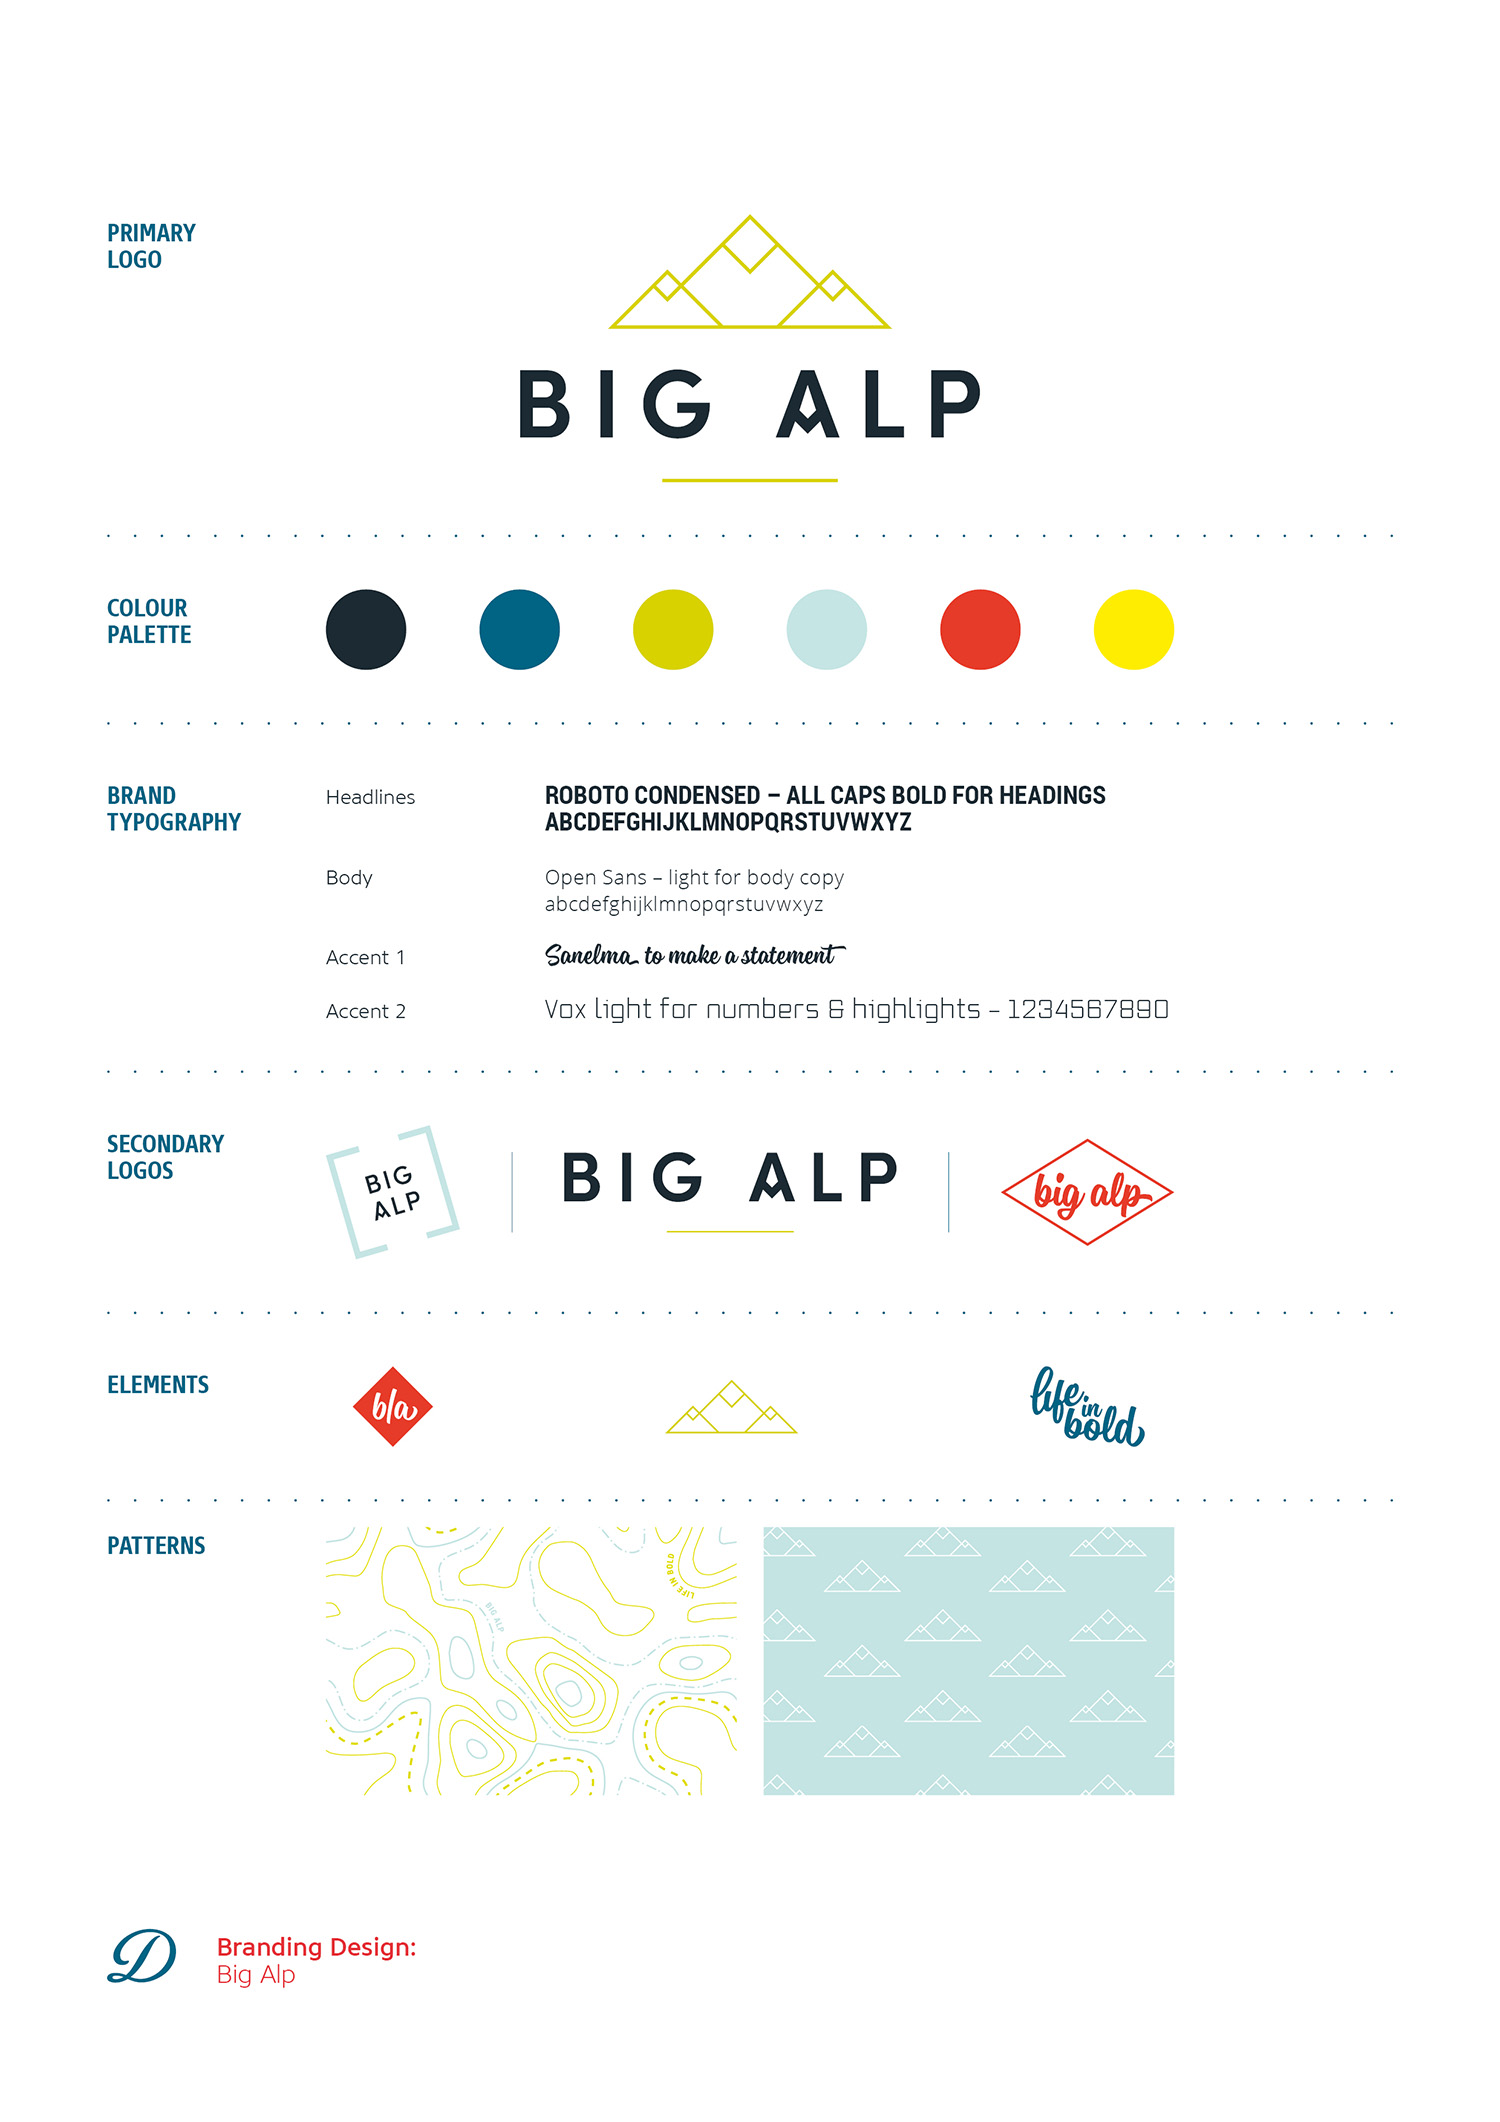 Branding and logo design for Big Alp by Ditto Creative branding agency Kent Big Alp brand board